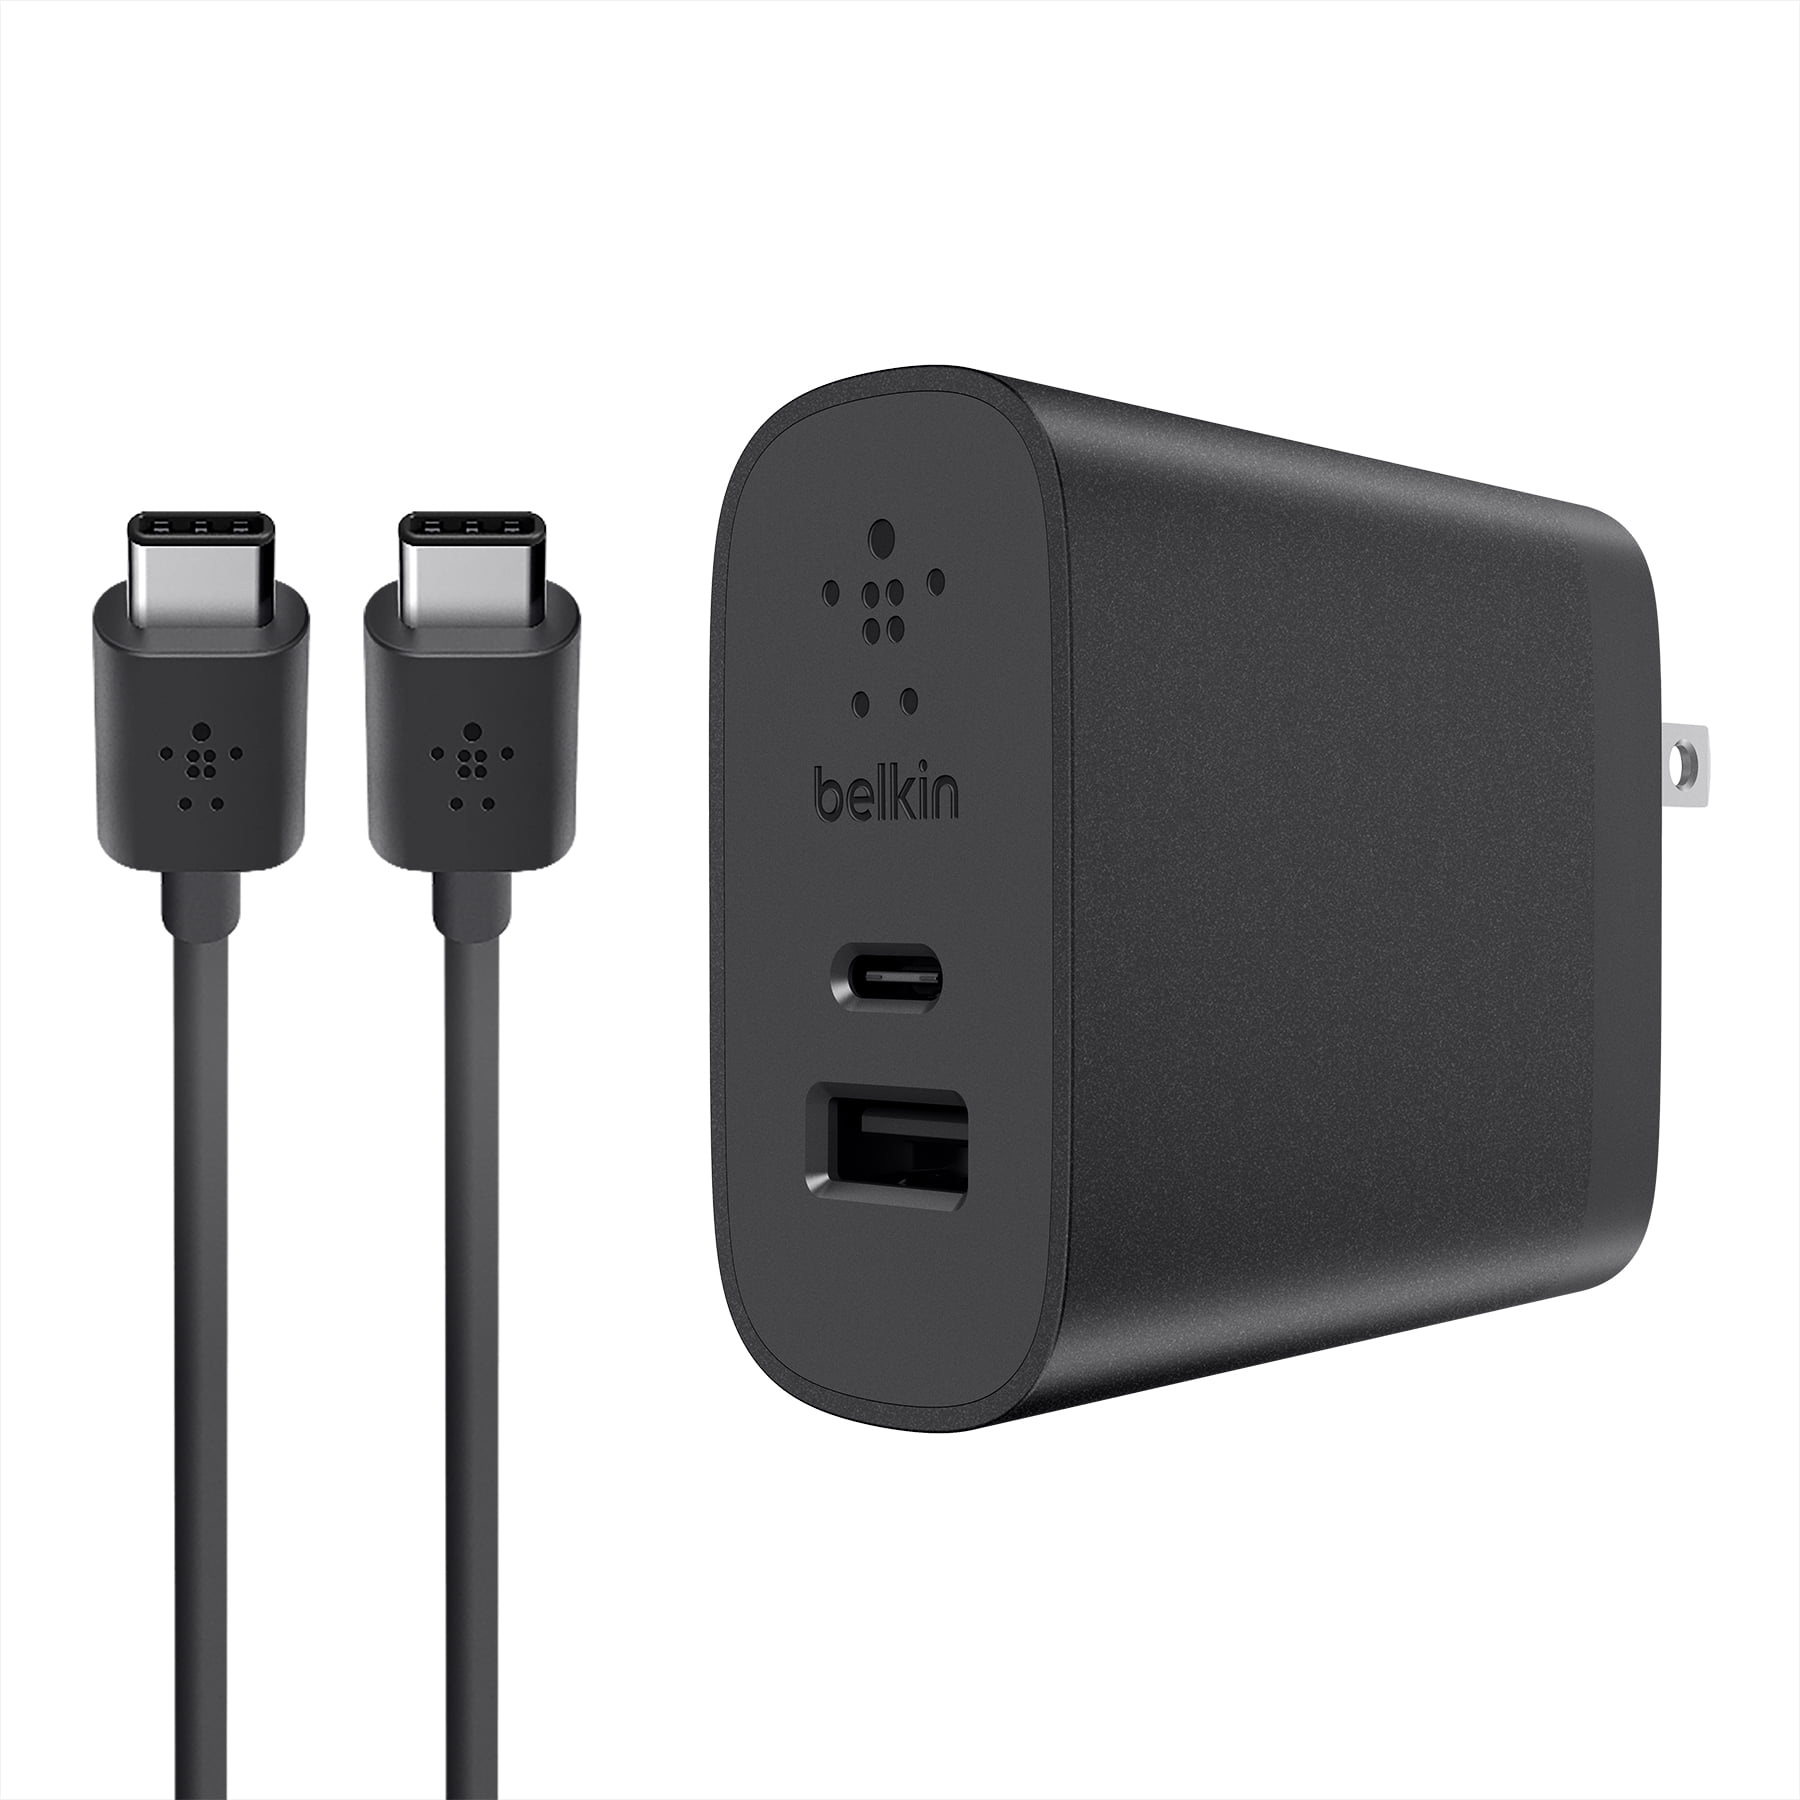 Belkin USB-C 2 Port 27w Wall Charger w/ 6ft USB-C to USB-A Cable, Black